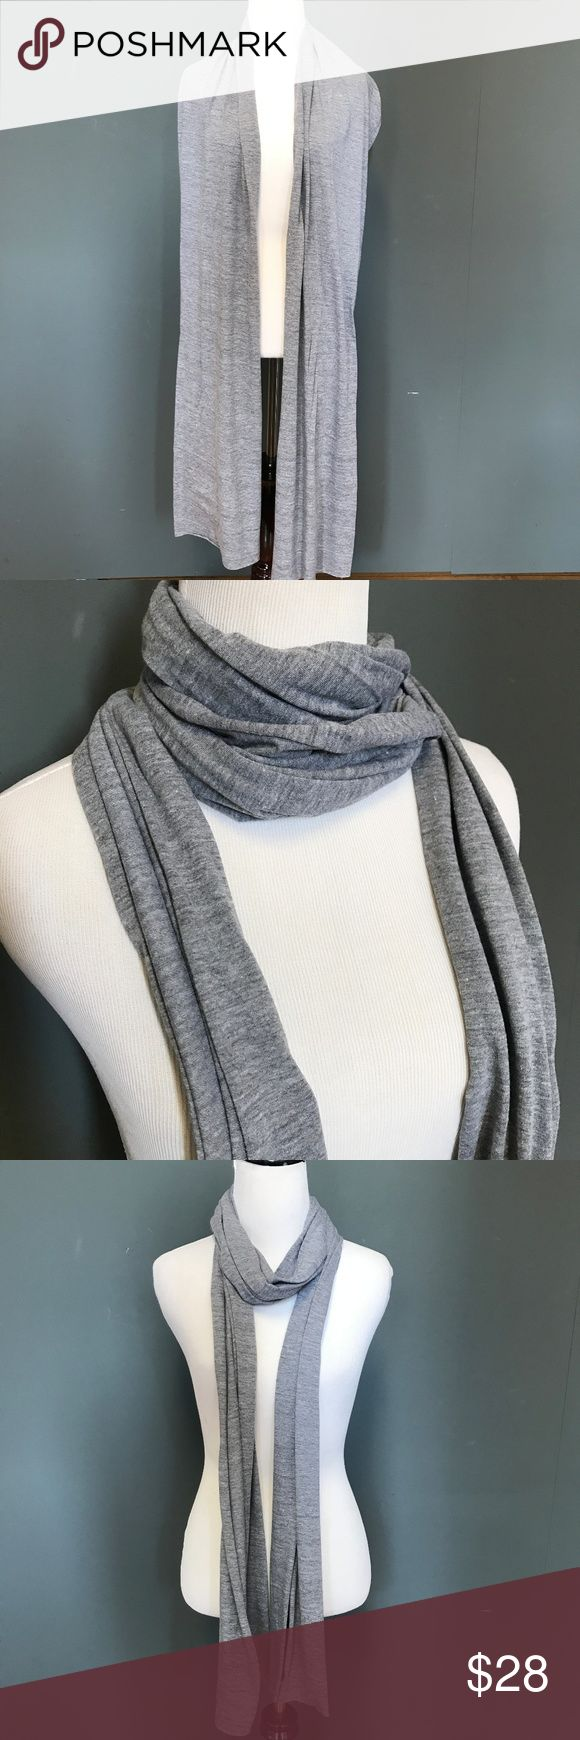 """American Apparel Grey Long Skinny Scarf American Apparel Skinny Scarf Grey Long Cotton Neck Burning Head Man Wrap Hijab  American Apparel's classic light weight skinny scarf.  Approx. Dimensions: 16""""x88""""  Can be used as an scarf, neck wrap, head scarf, or dust mask!  Light weight! Fabric content not listed. I think it's mostly cotton.  Great for Fall, Burning Man, and festivals.  Please check out my Trixy Xchange store for more scarves! :) American Apparel Accessories Scarves & Wraps"""